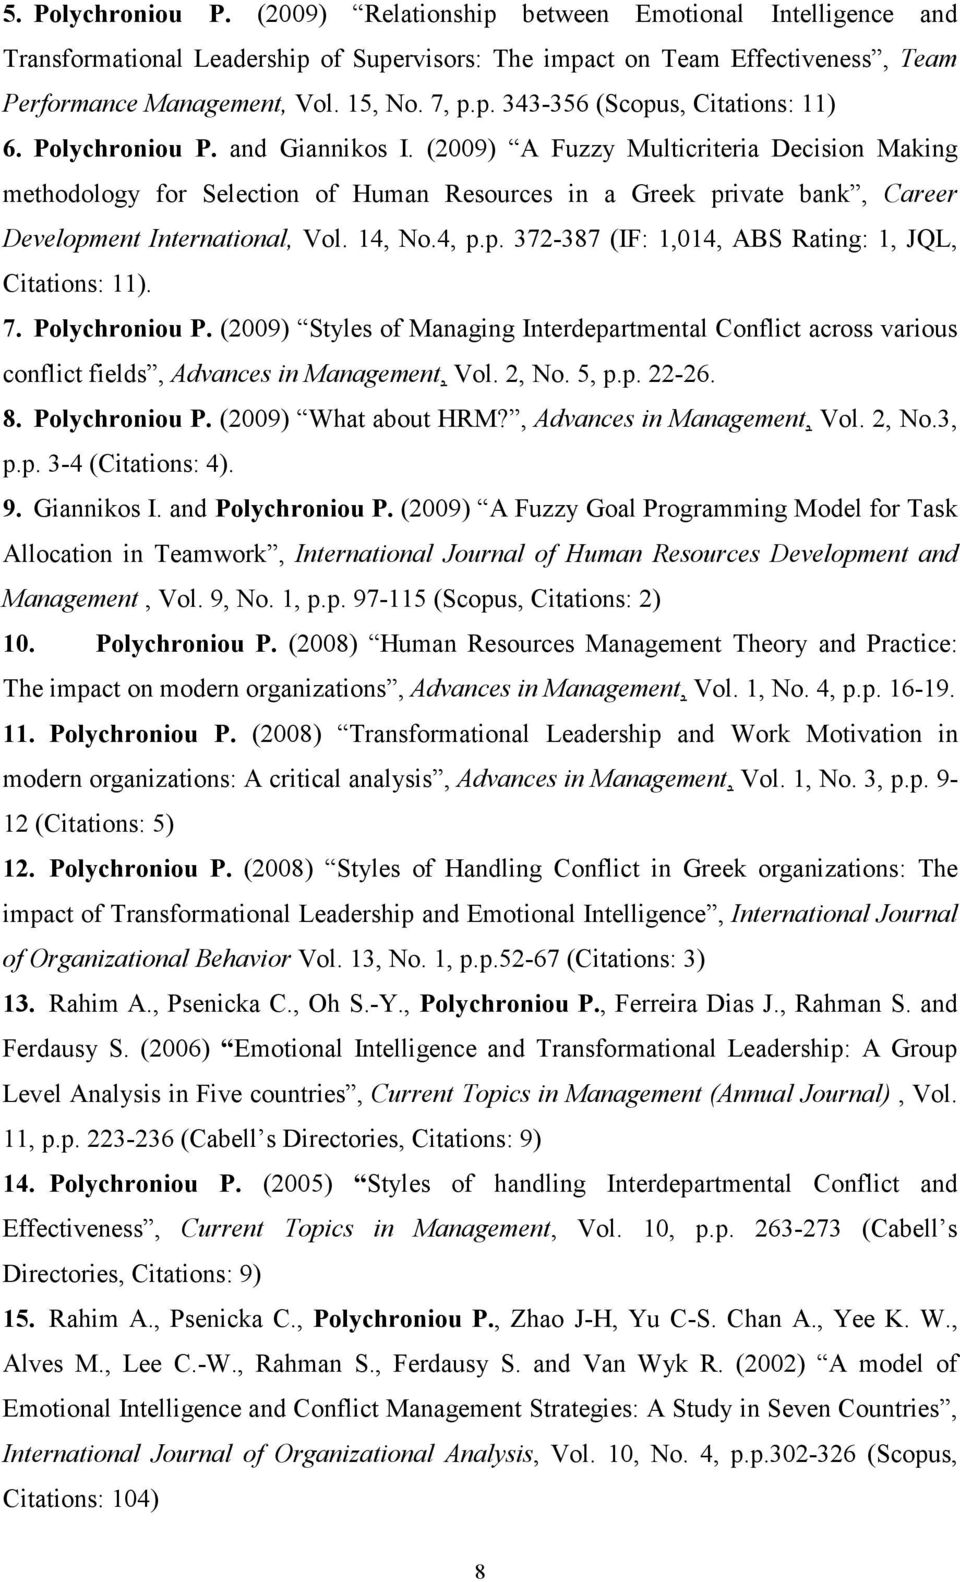 (2009) Α Fuzzy Multicriteria Decision Making methodology for Selection of Human Resources in a Greek private bank, Career Development International, Vol. 14, No.4, p.p. 372-387 (IF: 1,014, ABS Rating: 1, JQL, Citations: 11).